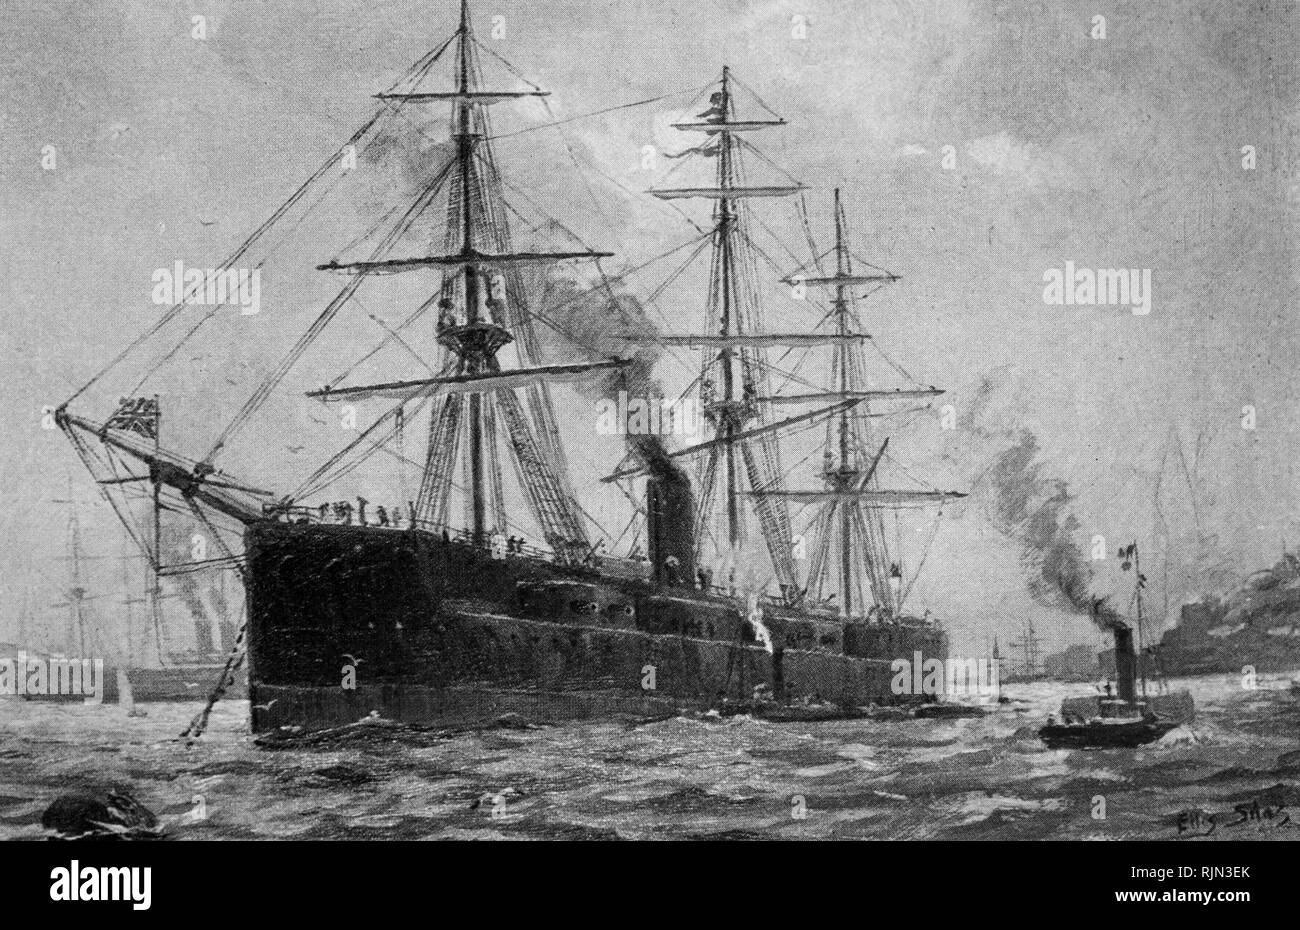 Illustration showing the Royal Navy ship 'The Monarch' a turret battleship 1869 - Stock Image